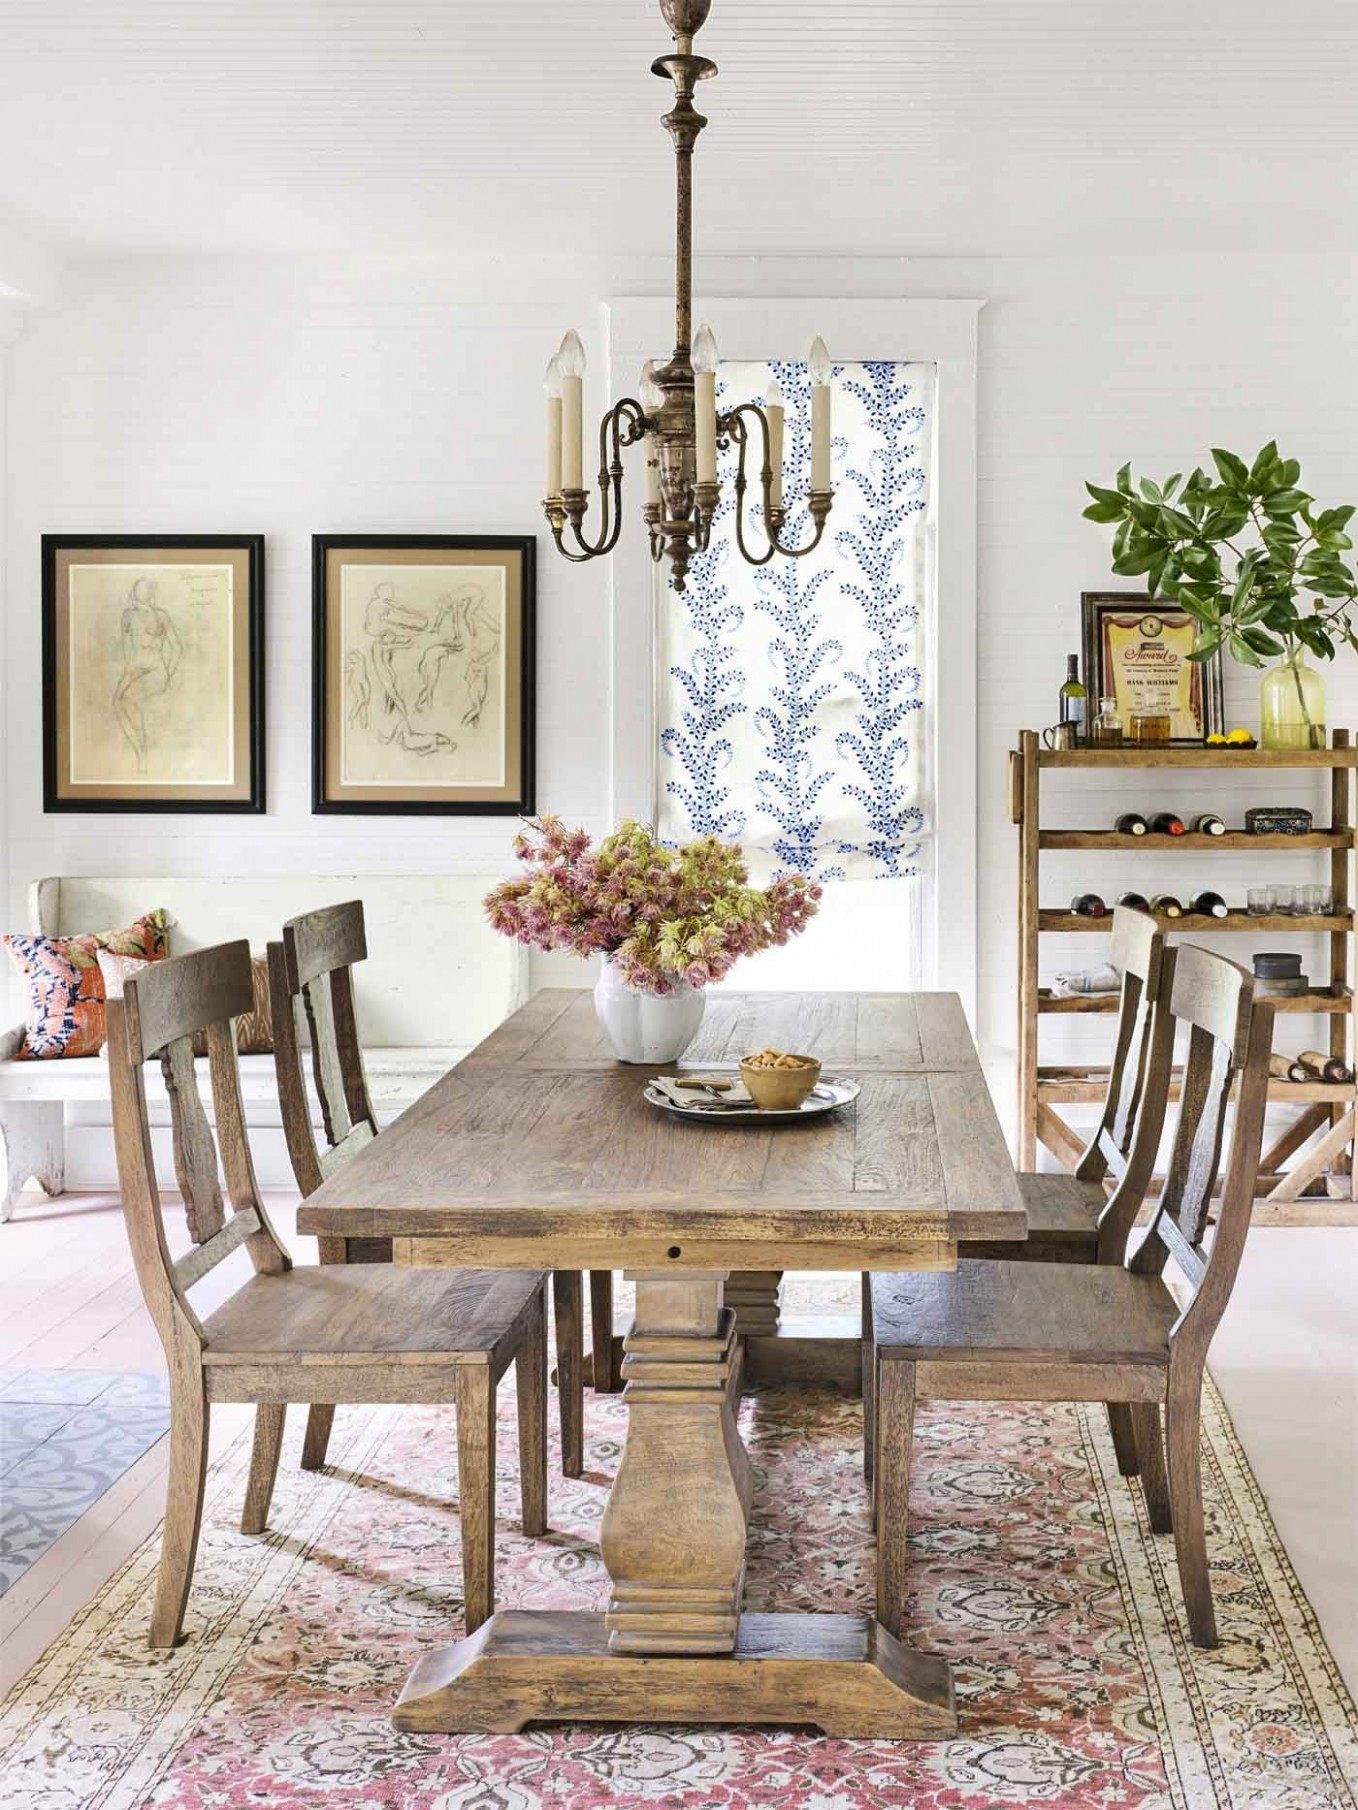 10 Best Dining Room Decorating Ideas - Country Dining Room Decor - Dining Room Ideas Oak Table